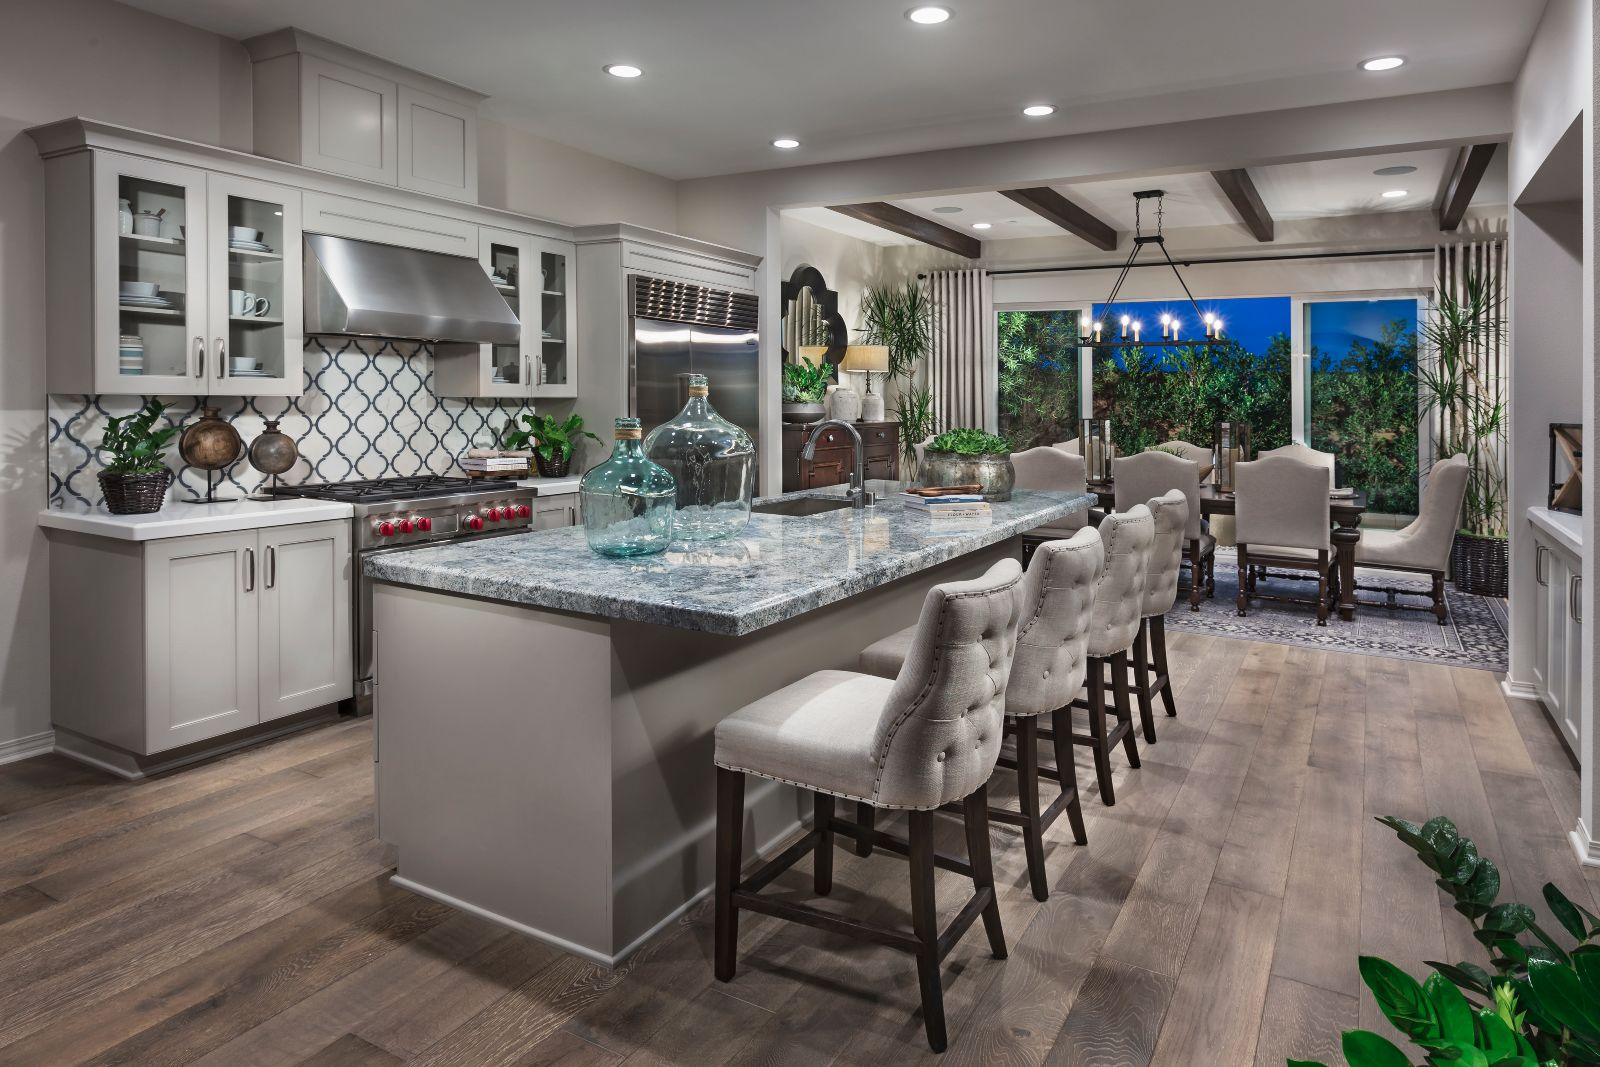 Kitchen | Beverly at Eastwood Village in Irvine, CA | Brookfield Residential